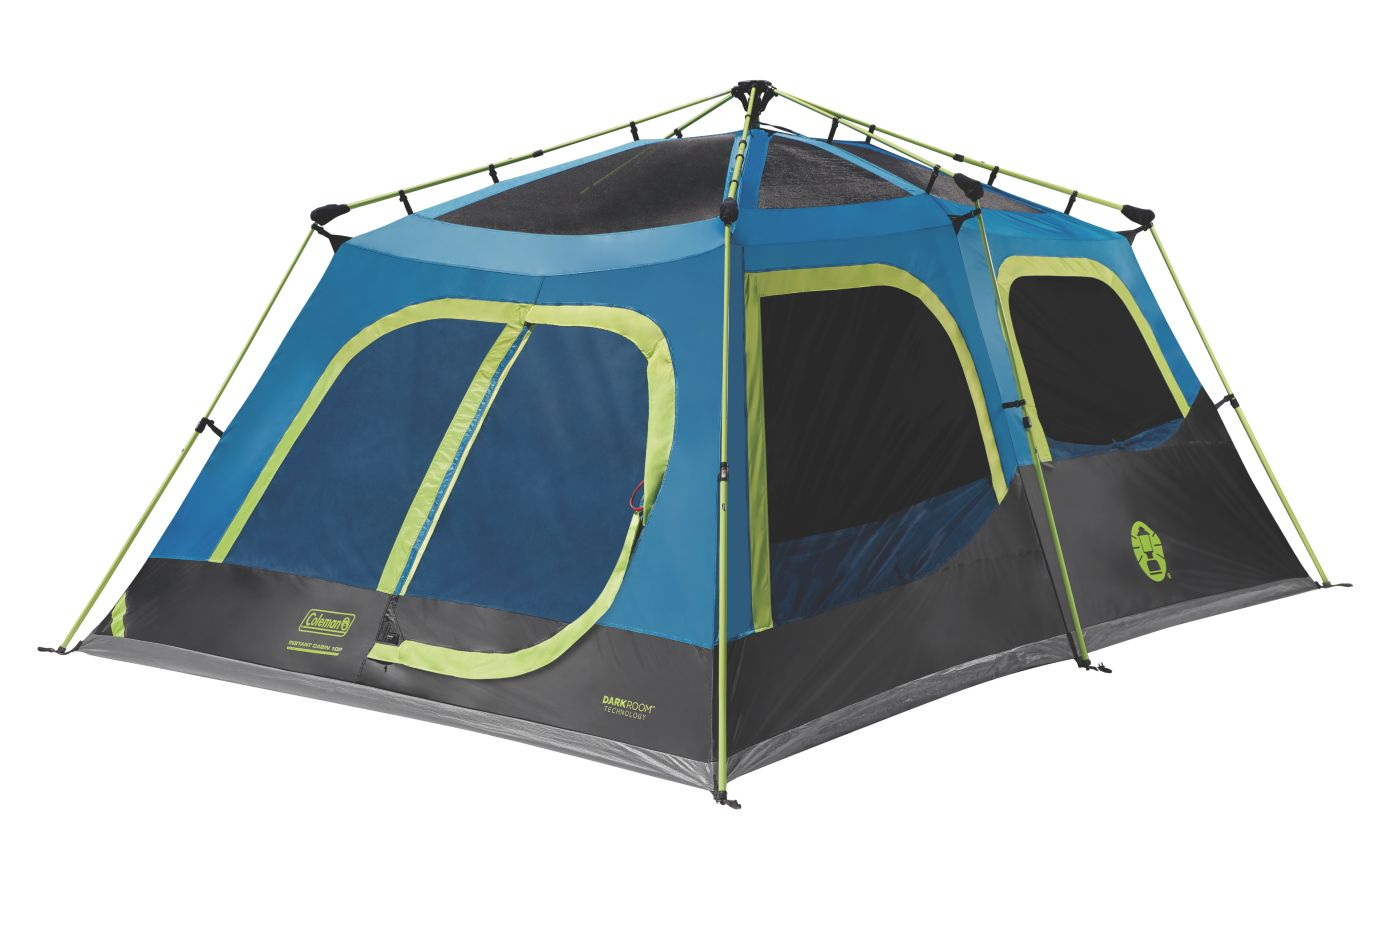 Charmant 10 Person Dark Room Instant Cabin Tent With Rainfly